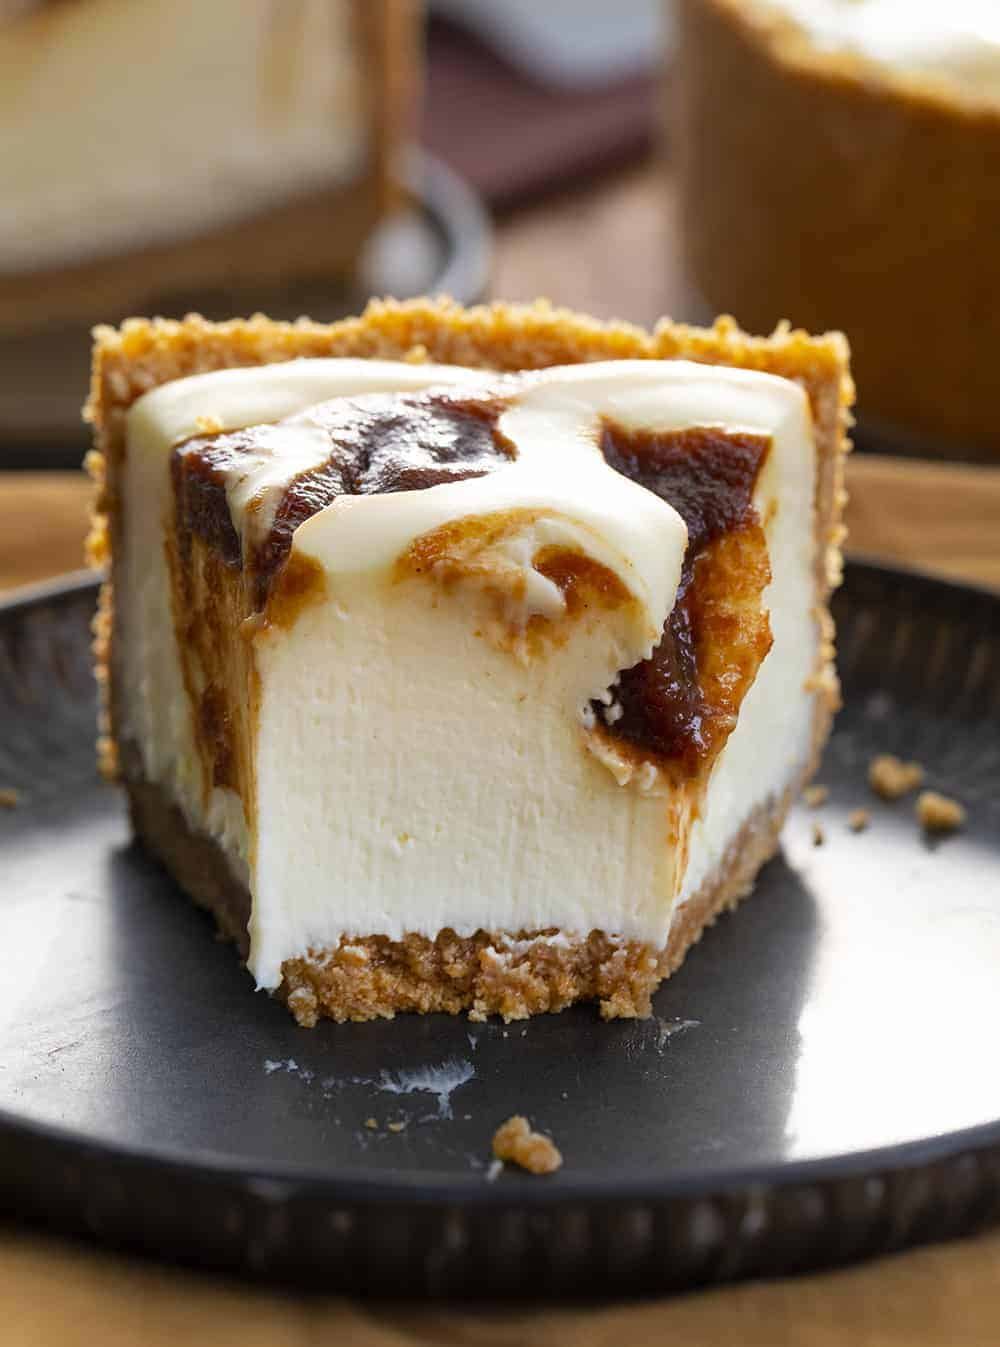 Inside of Apple Butter Cheesecake